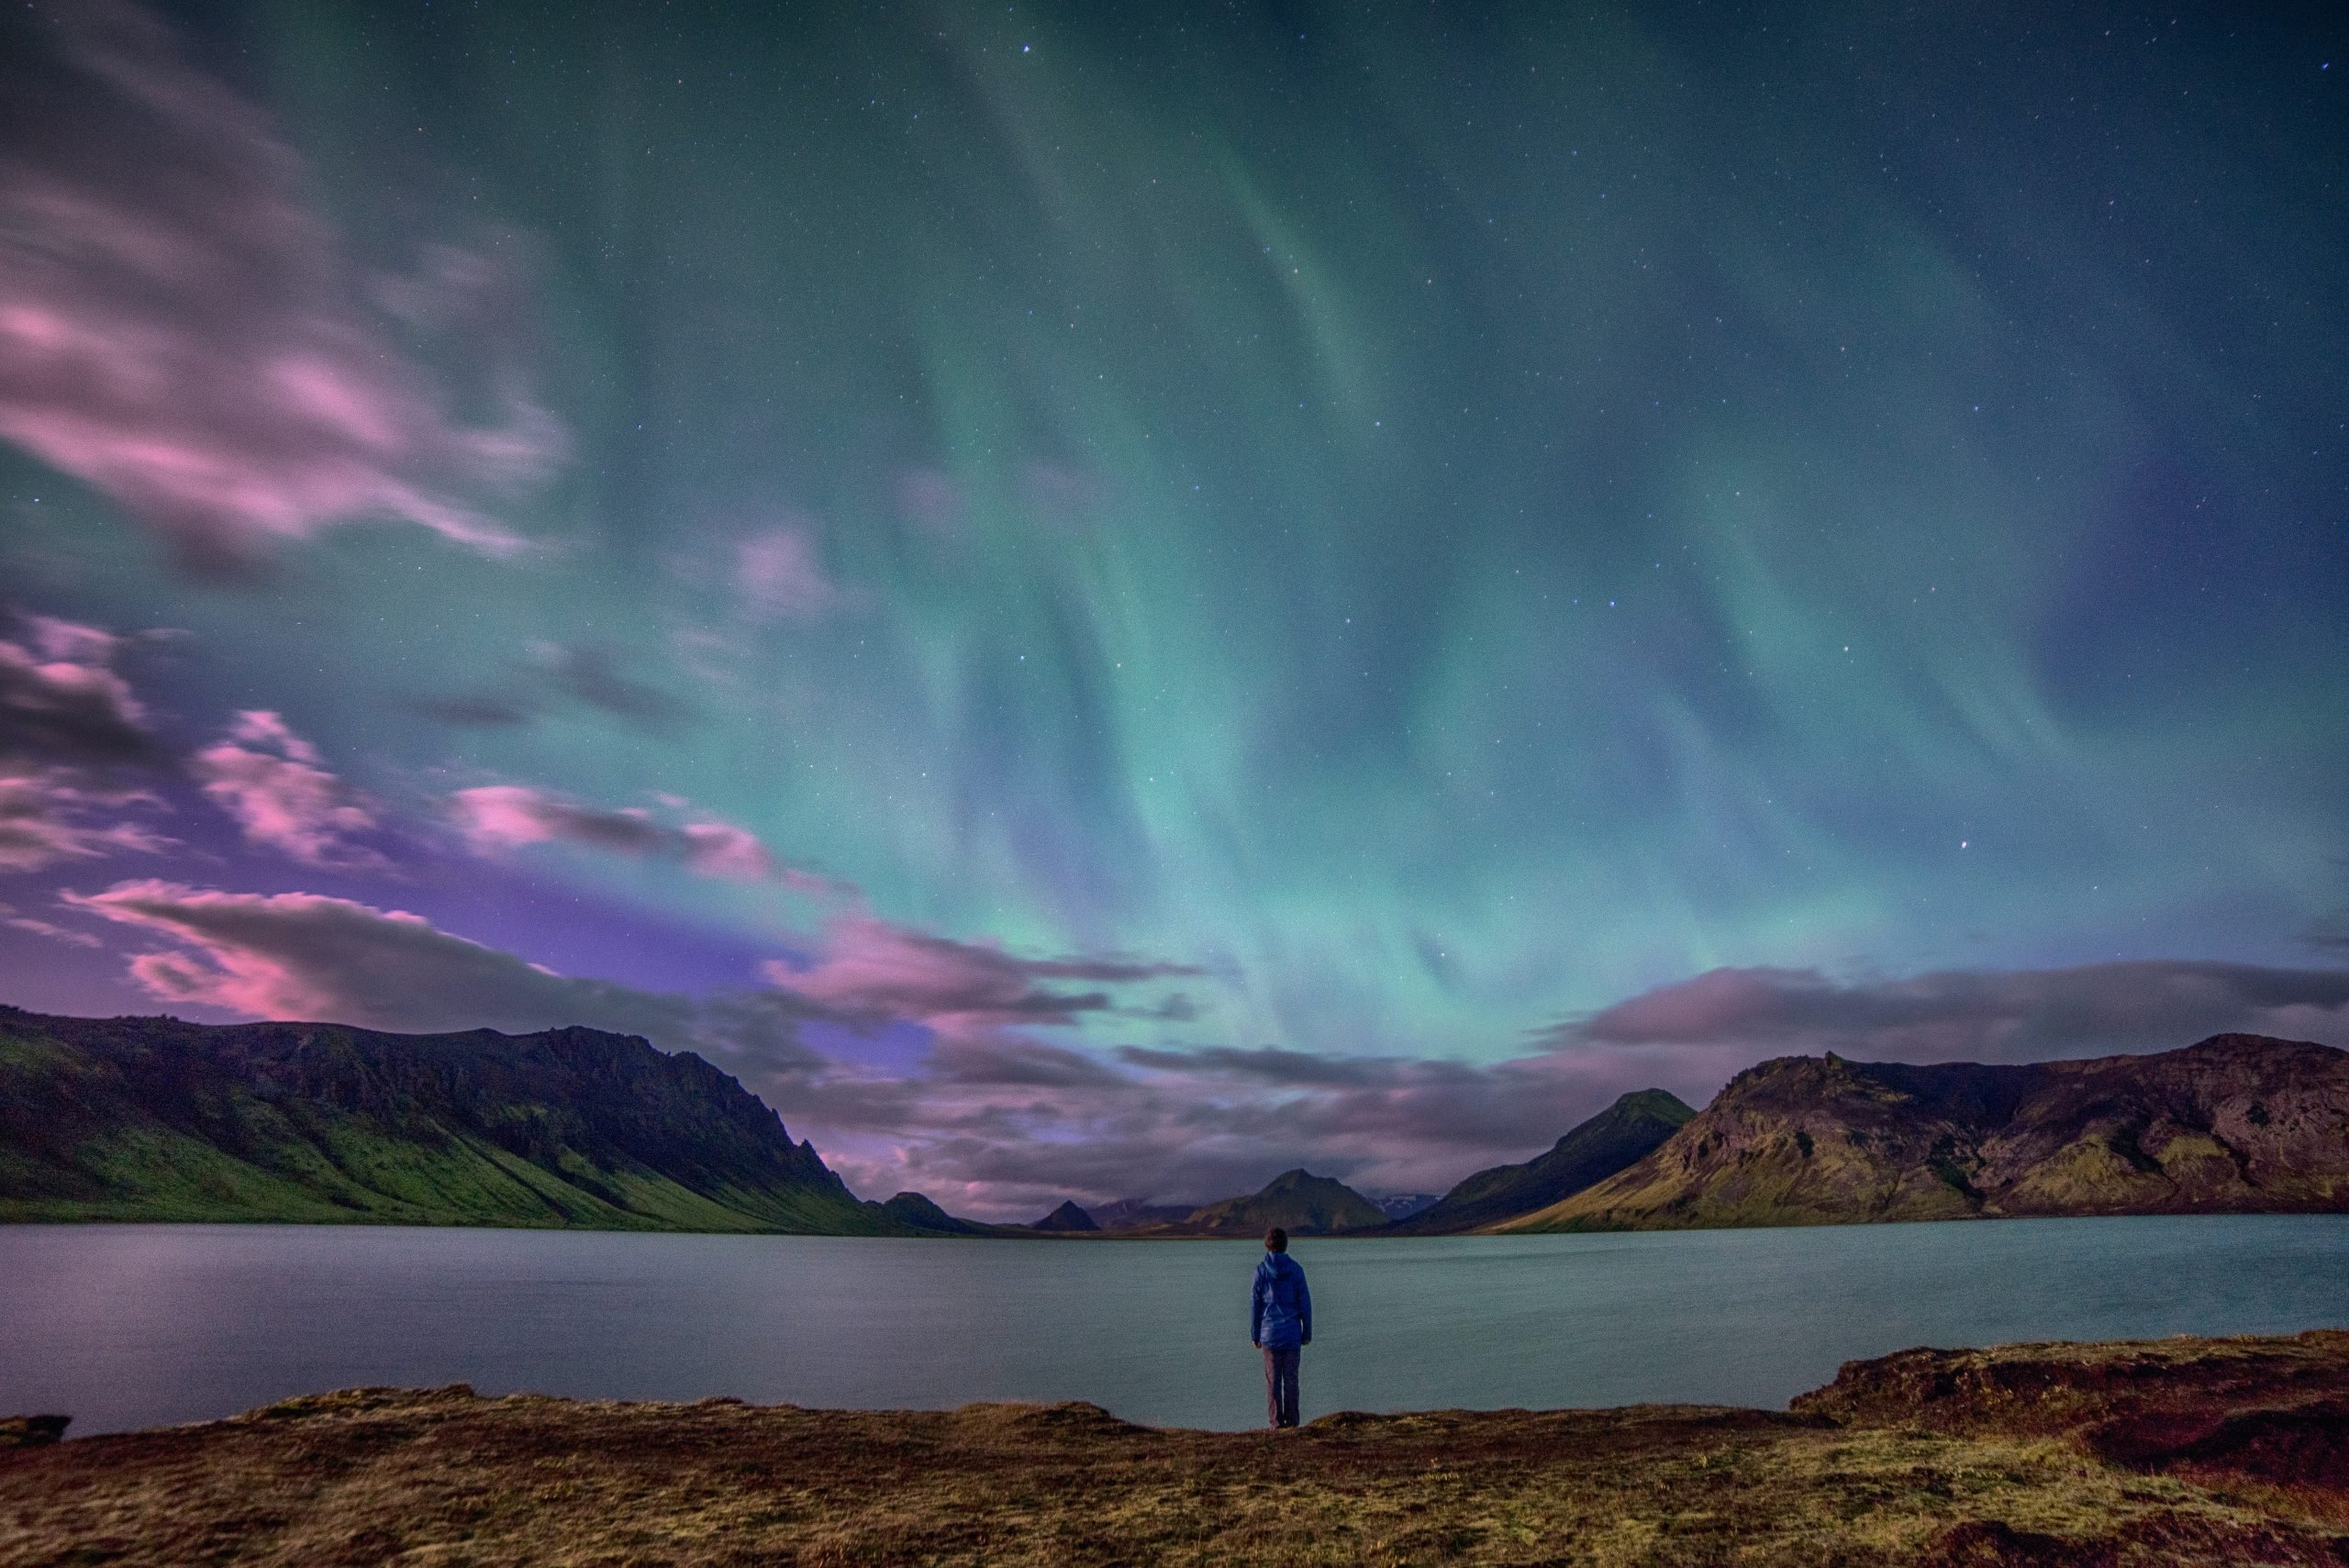 Northern Lights over a lake in the Icelandic Highlands.